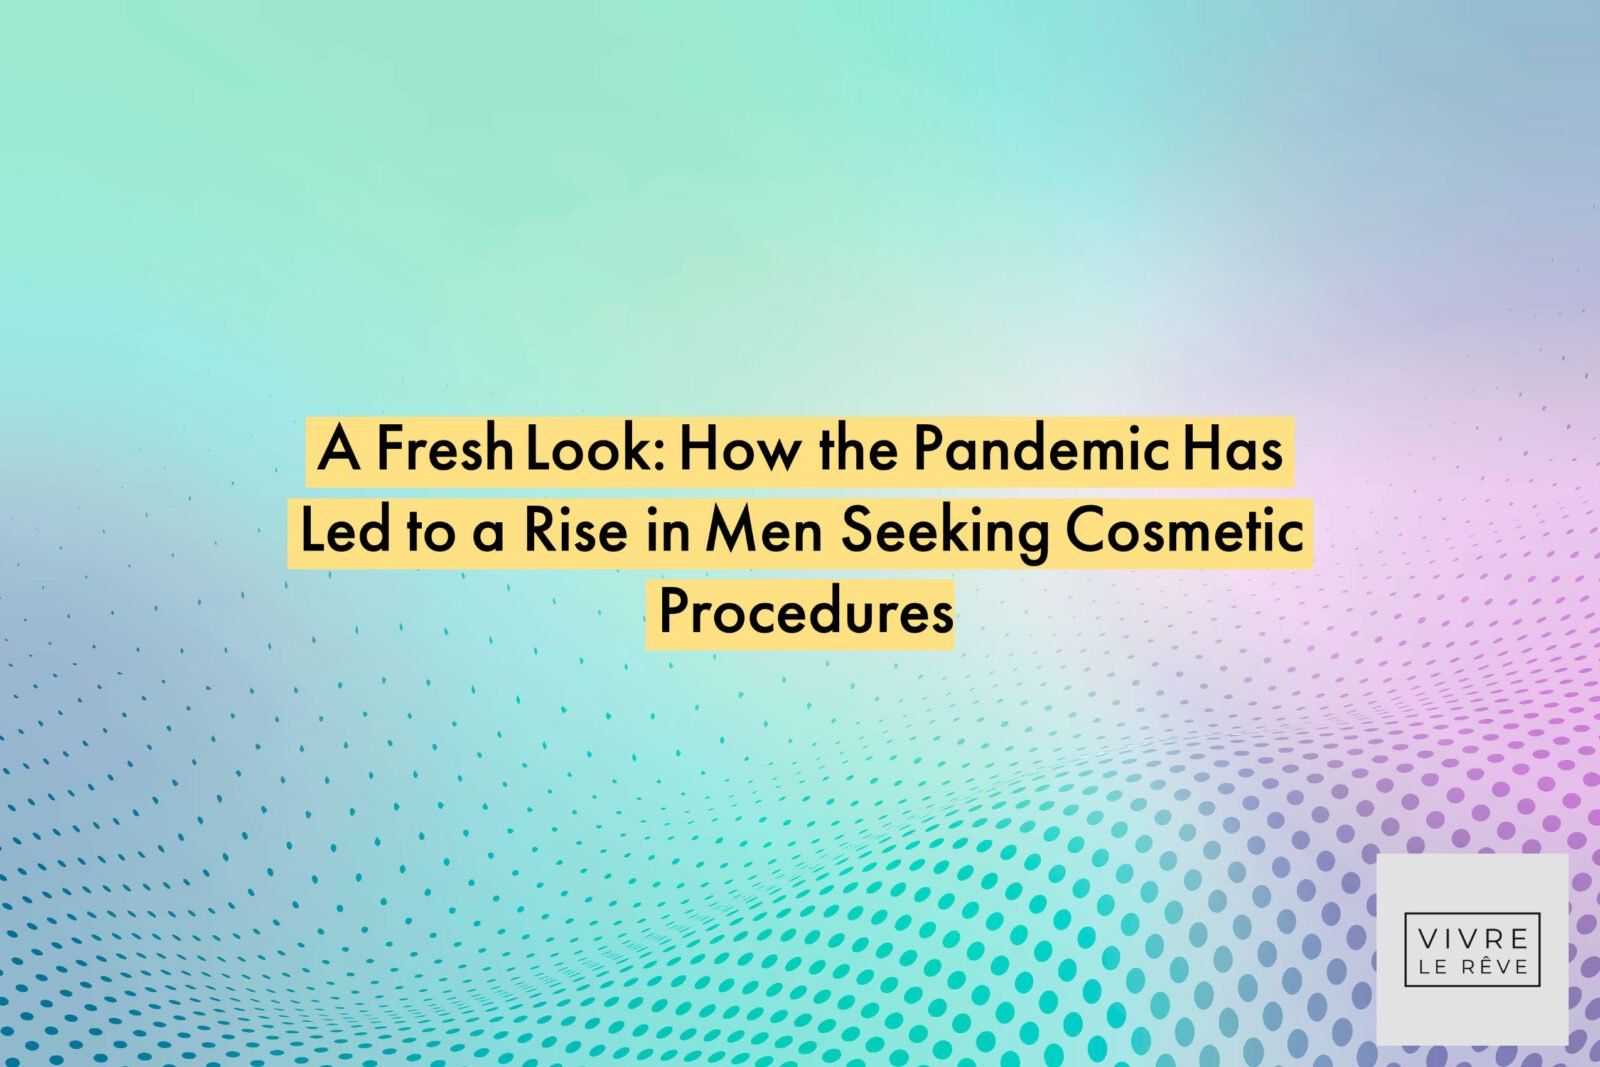 A Fresh Look: How the Pandemic Has Led to a Rise in Men Seeking Cosmetic Procedures